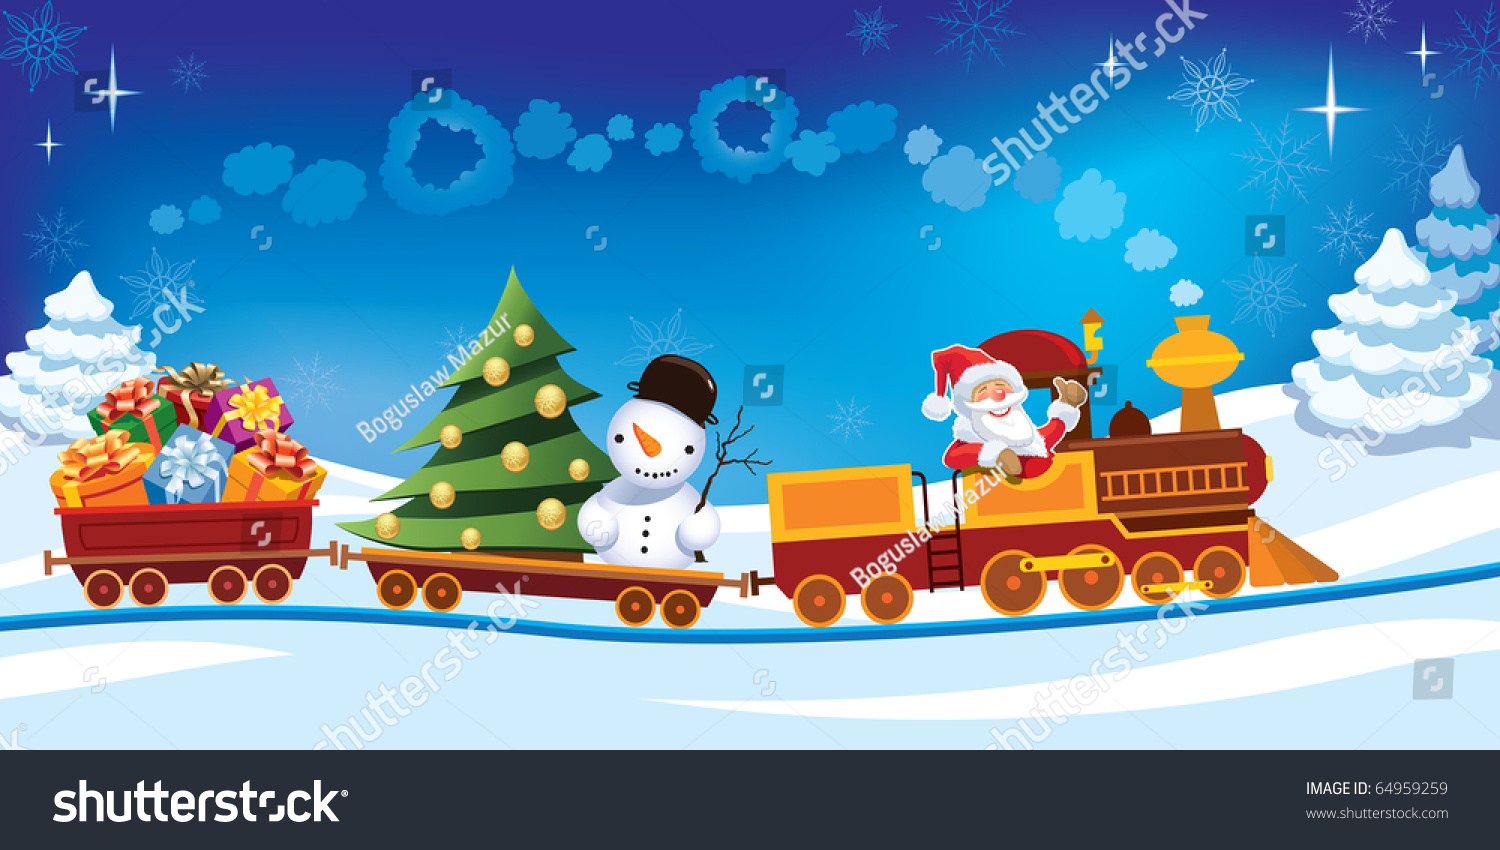 Santa Claus Toy Train Gifts Snowman Stock Vector 64959259